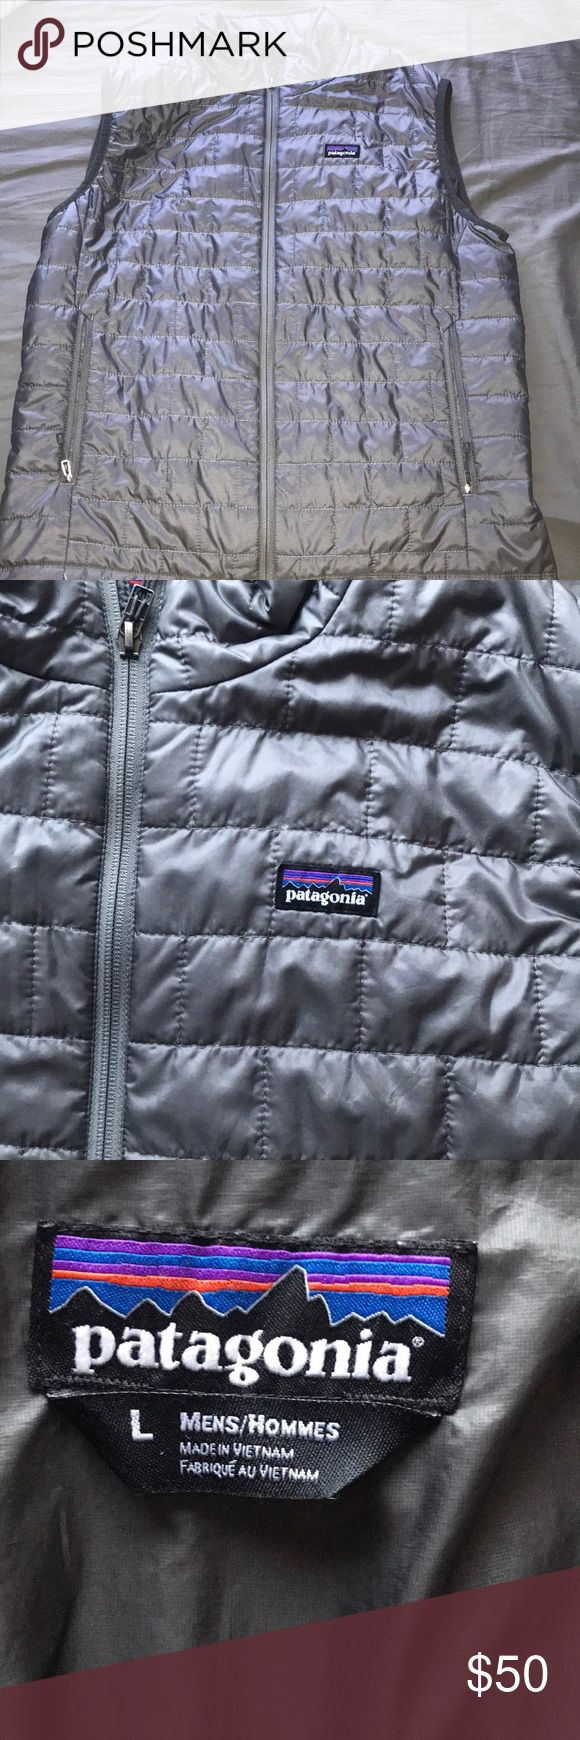 Patagonia vest Patagonia vest men's size large Small cut on left size pocket Patagonia Jackets & Coats Vests